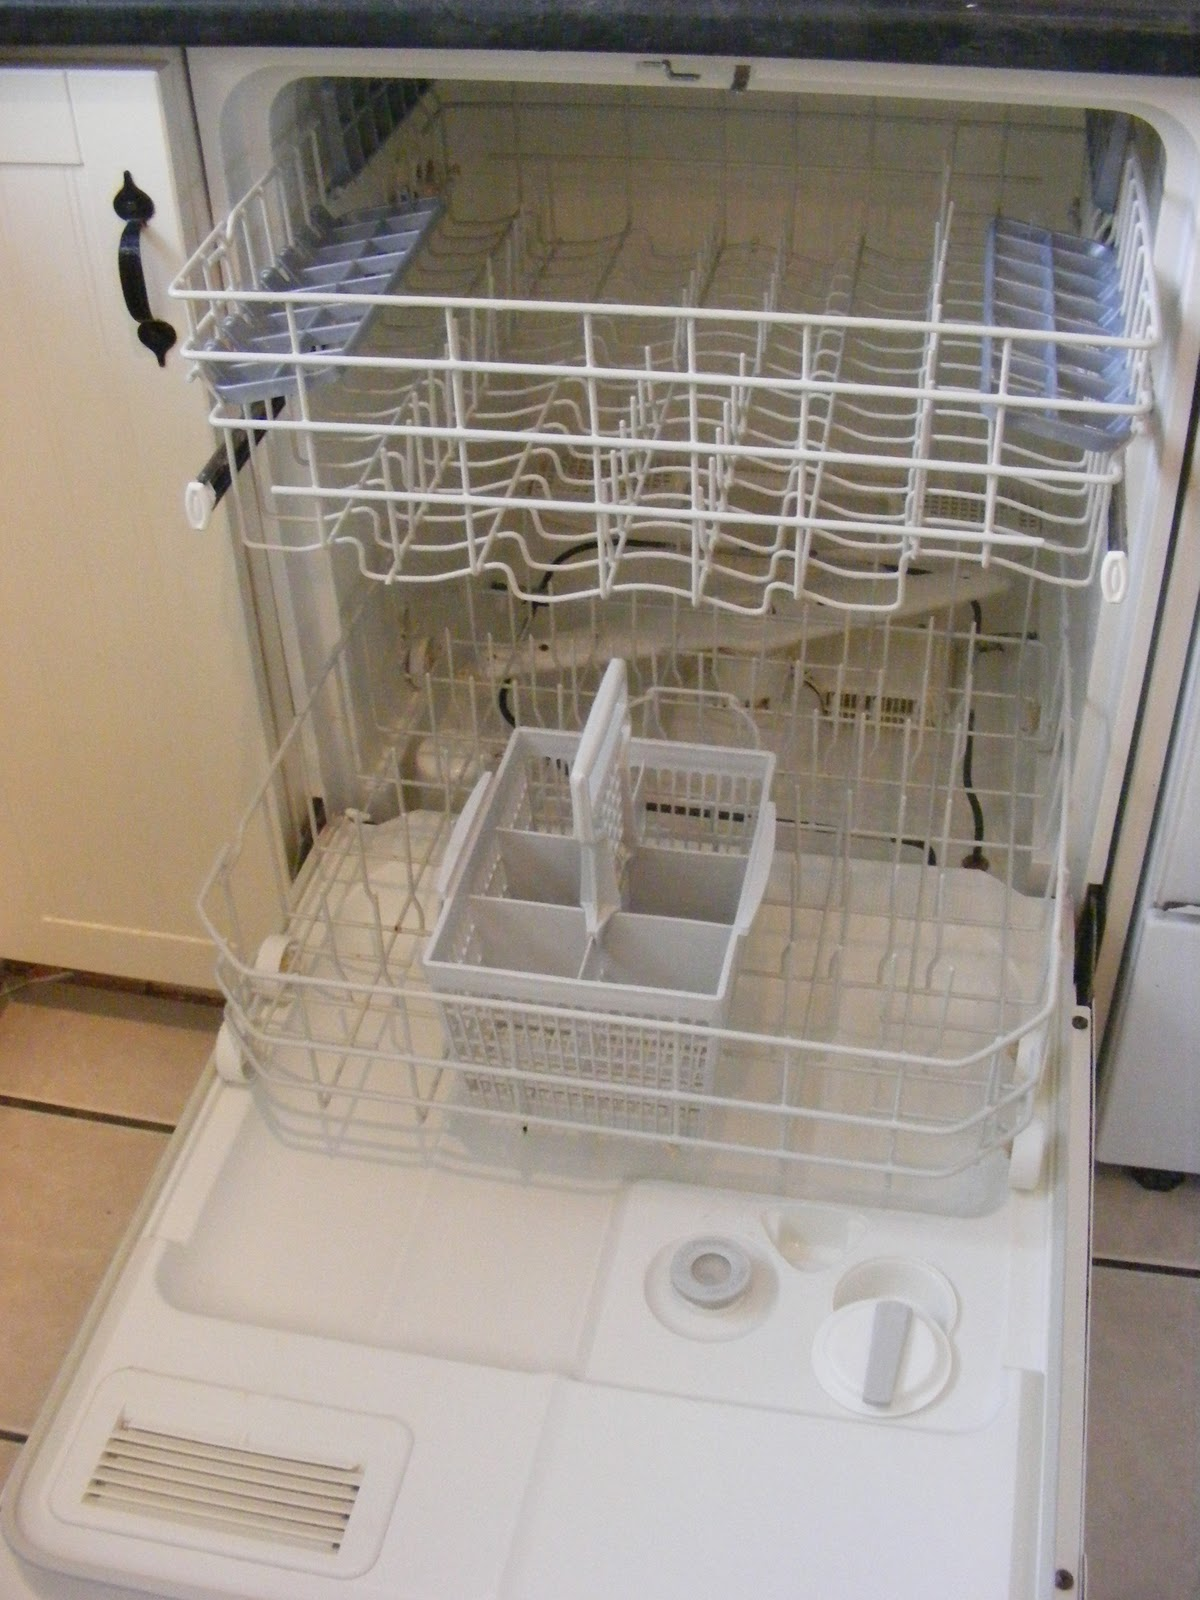 How To Clean Your Dishwasher Without Gagging Too Much The Complete Guide Imperfect Homemaking